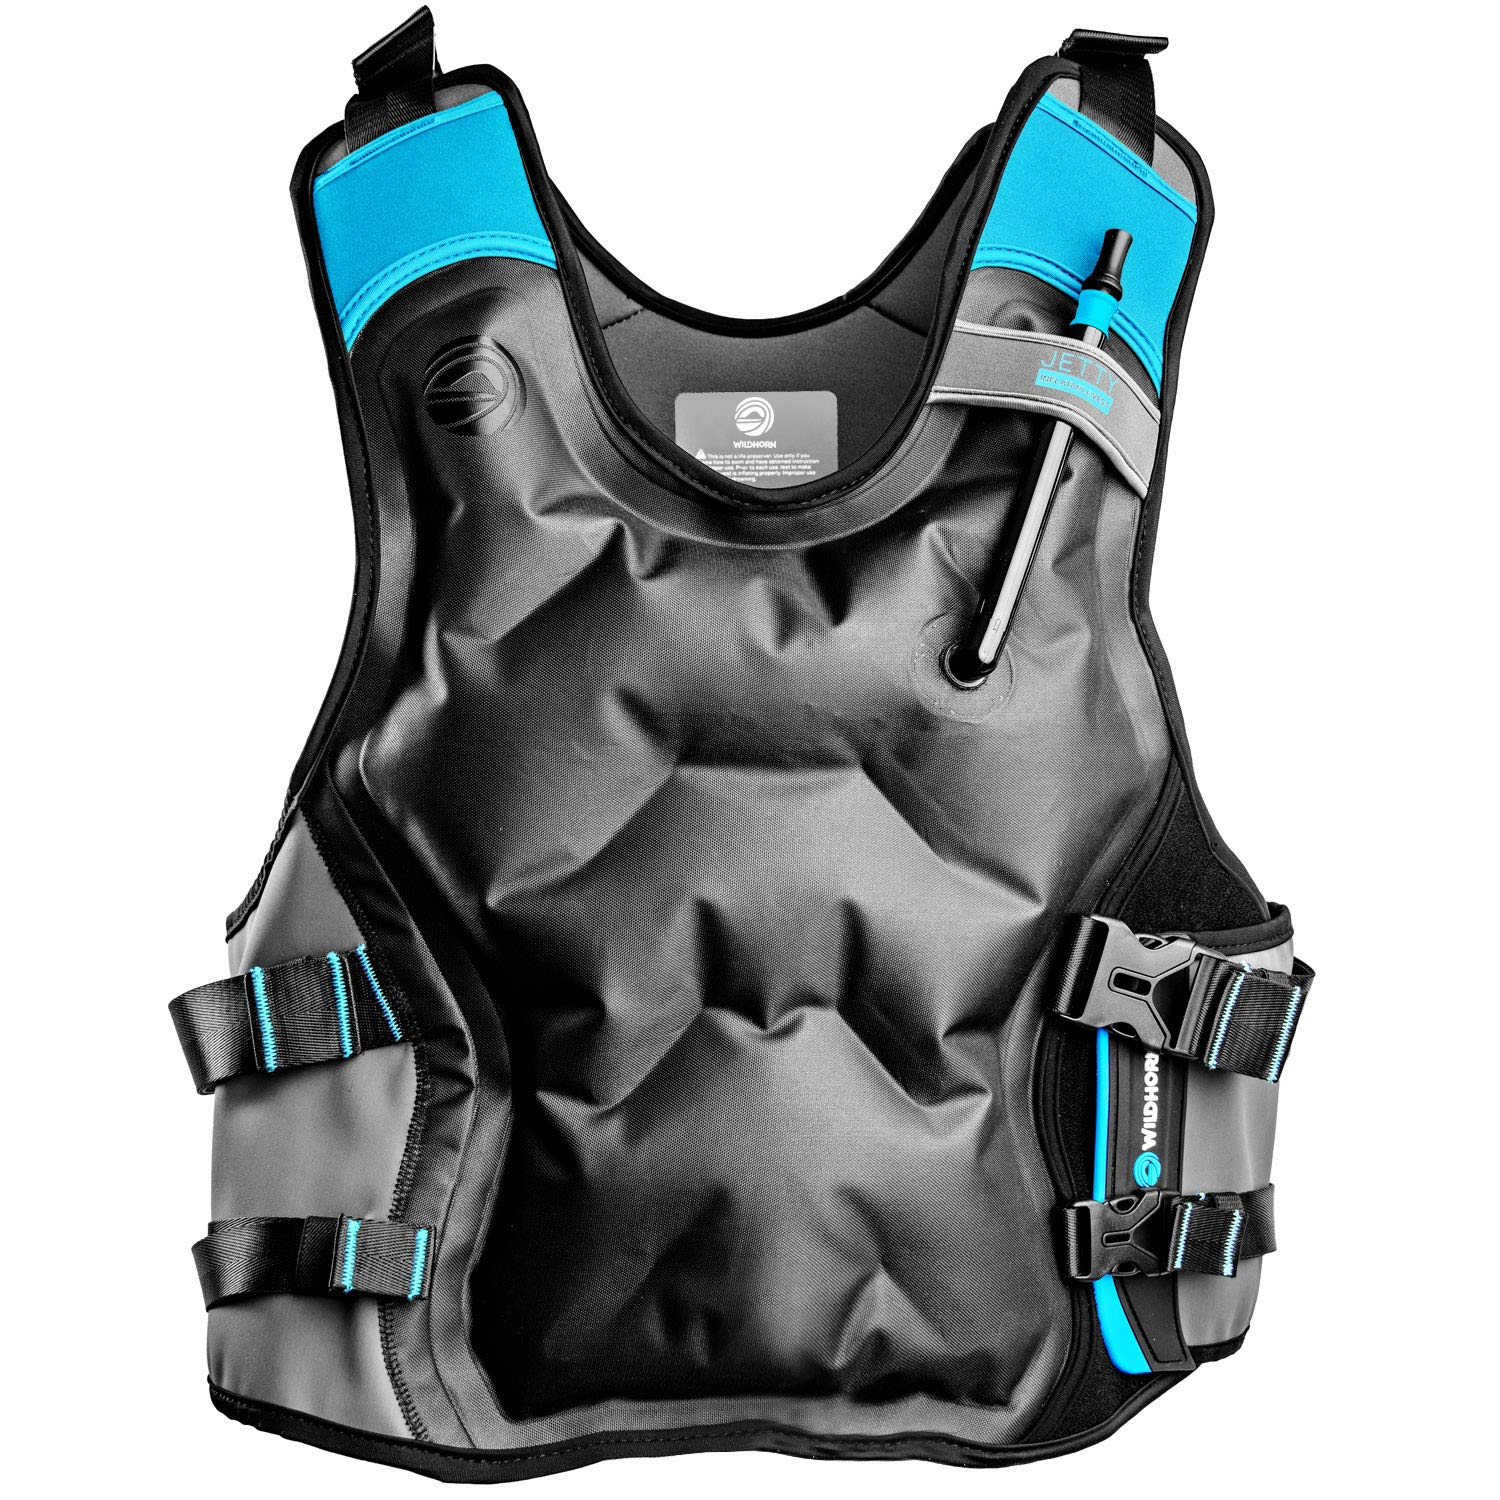 Jetty Inflatable Snorkel Vest - Premium Snorkel Jacket for Adults. Features Balanced Flotation, Secure Lock and Comfort Fit. Perfect For Snorkeling, Paddle-boarding and Other Low Impact Water Sports. by WildHorn Outfitters